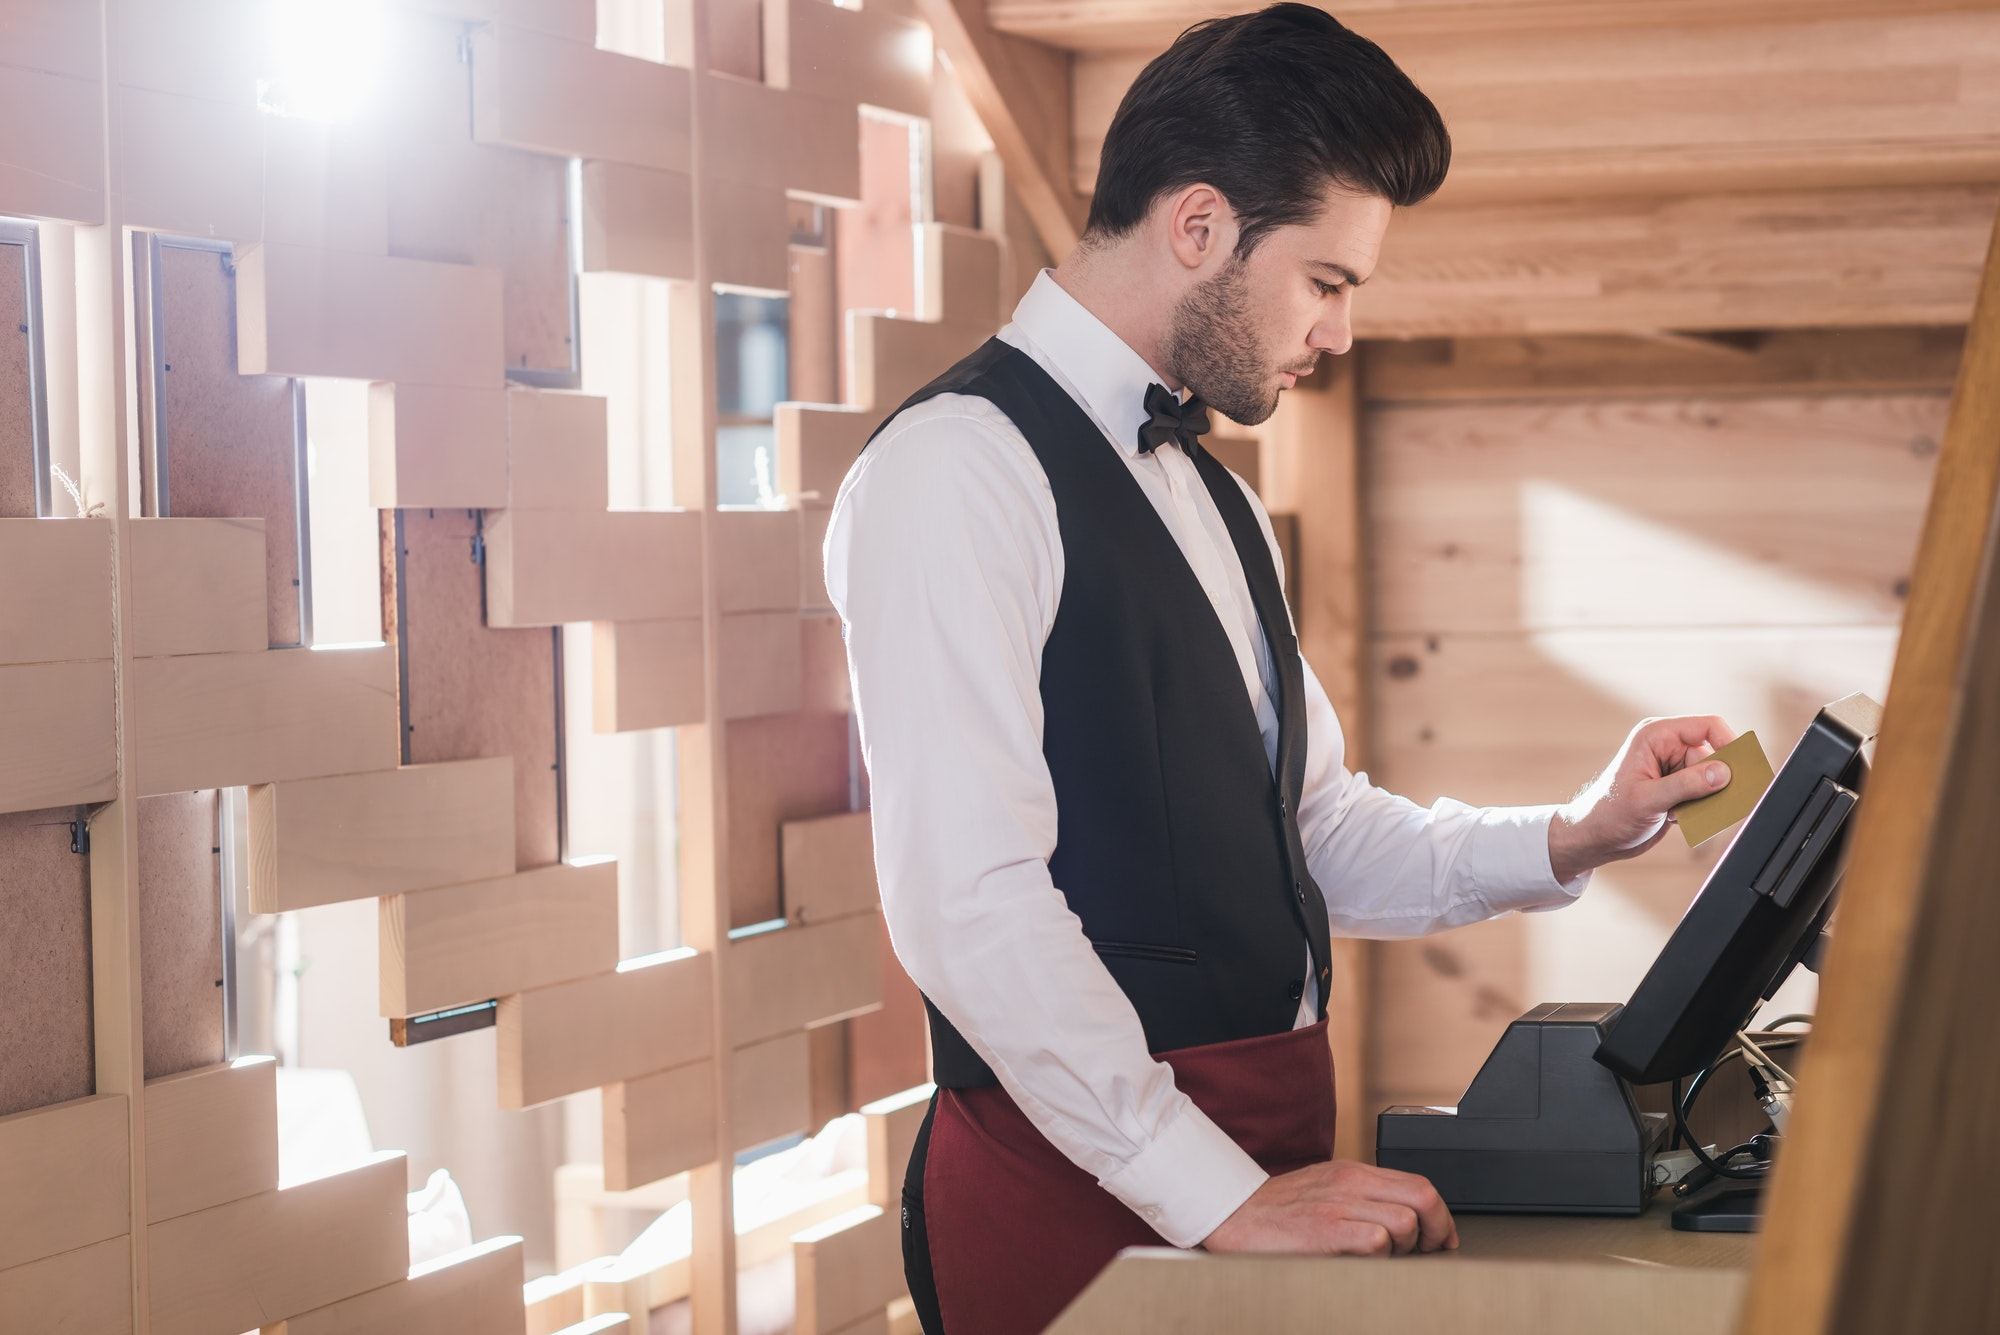 Waiter standing with credit card at cash register